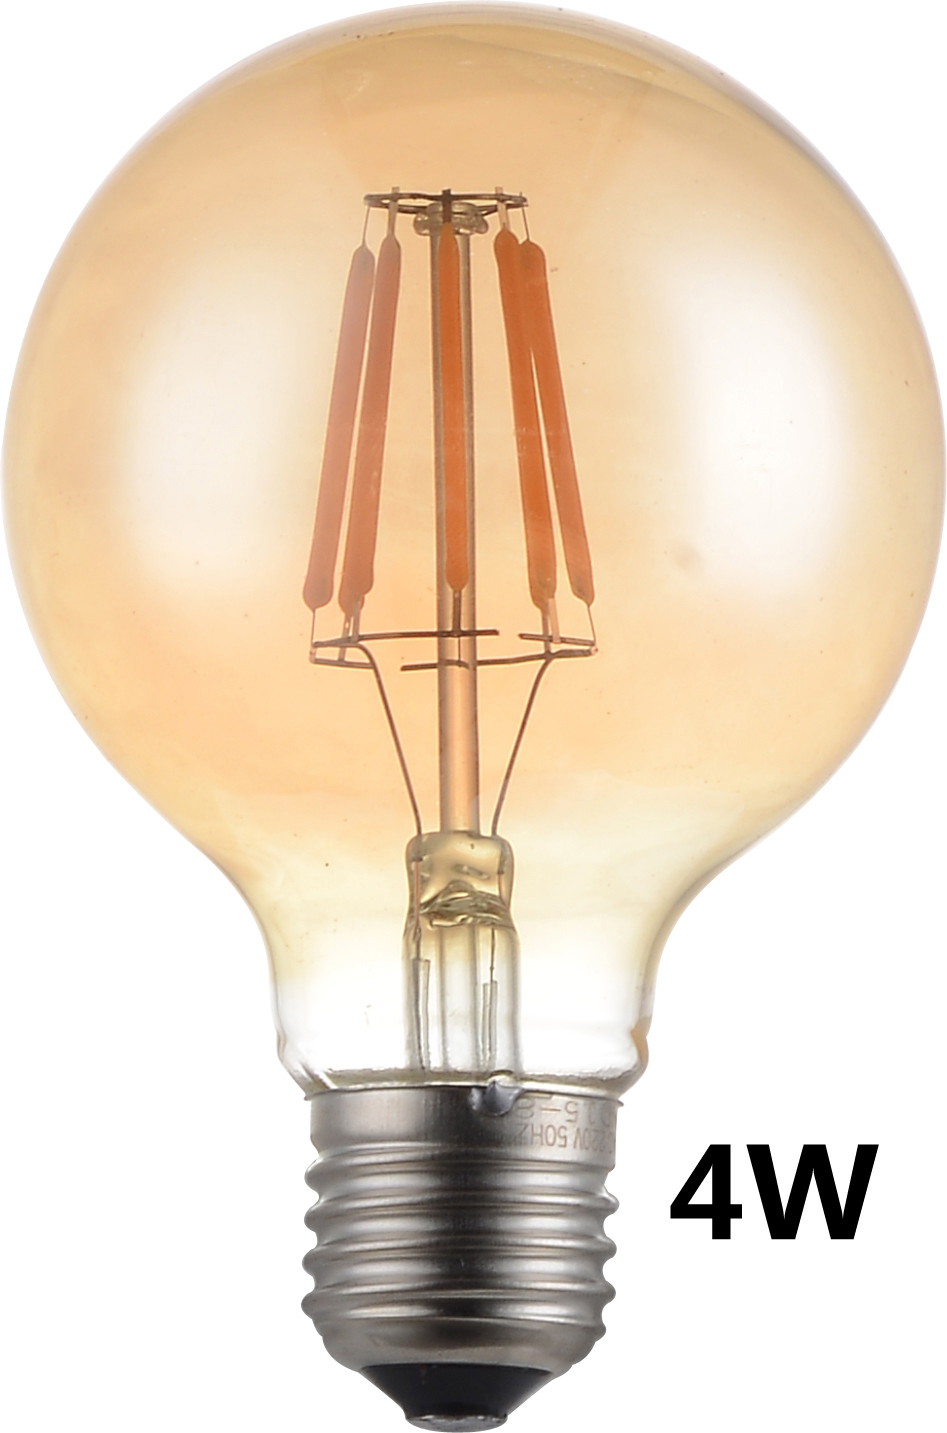 g95 led 4w gold filament bulb e27 led filament light 220v vintage edison bulb lamp retro. Black Bedroom Furniture Sets. Home Design Ideas